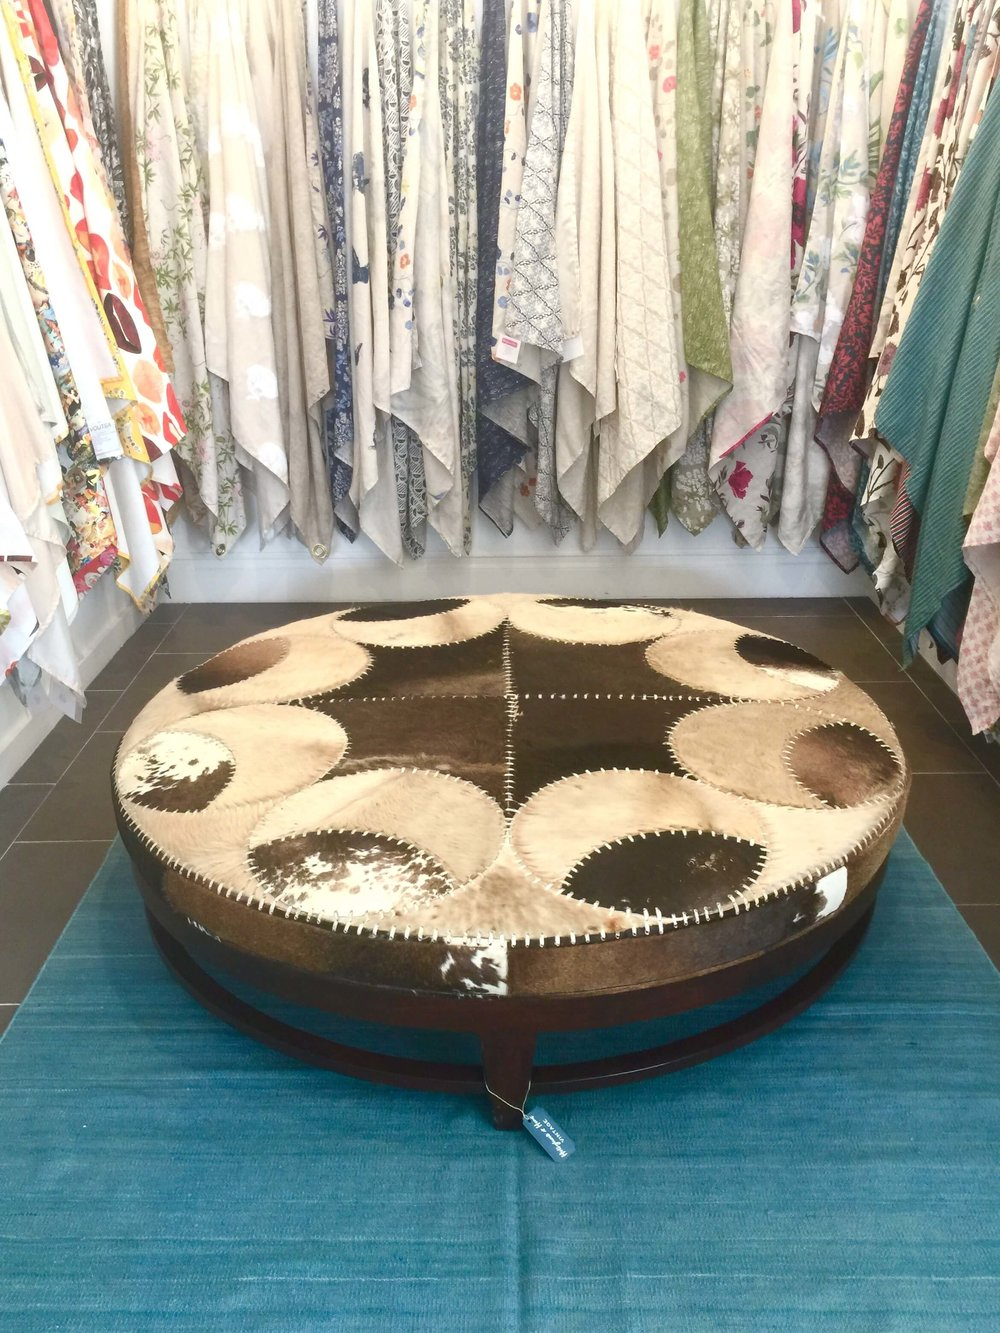 This creatively upholstered cowhide ottoman is surrounded by fabric samples at Hollywood at Home, Los Angeles home furnishings shop #cowhideottoman #homedecoratingideas